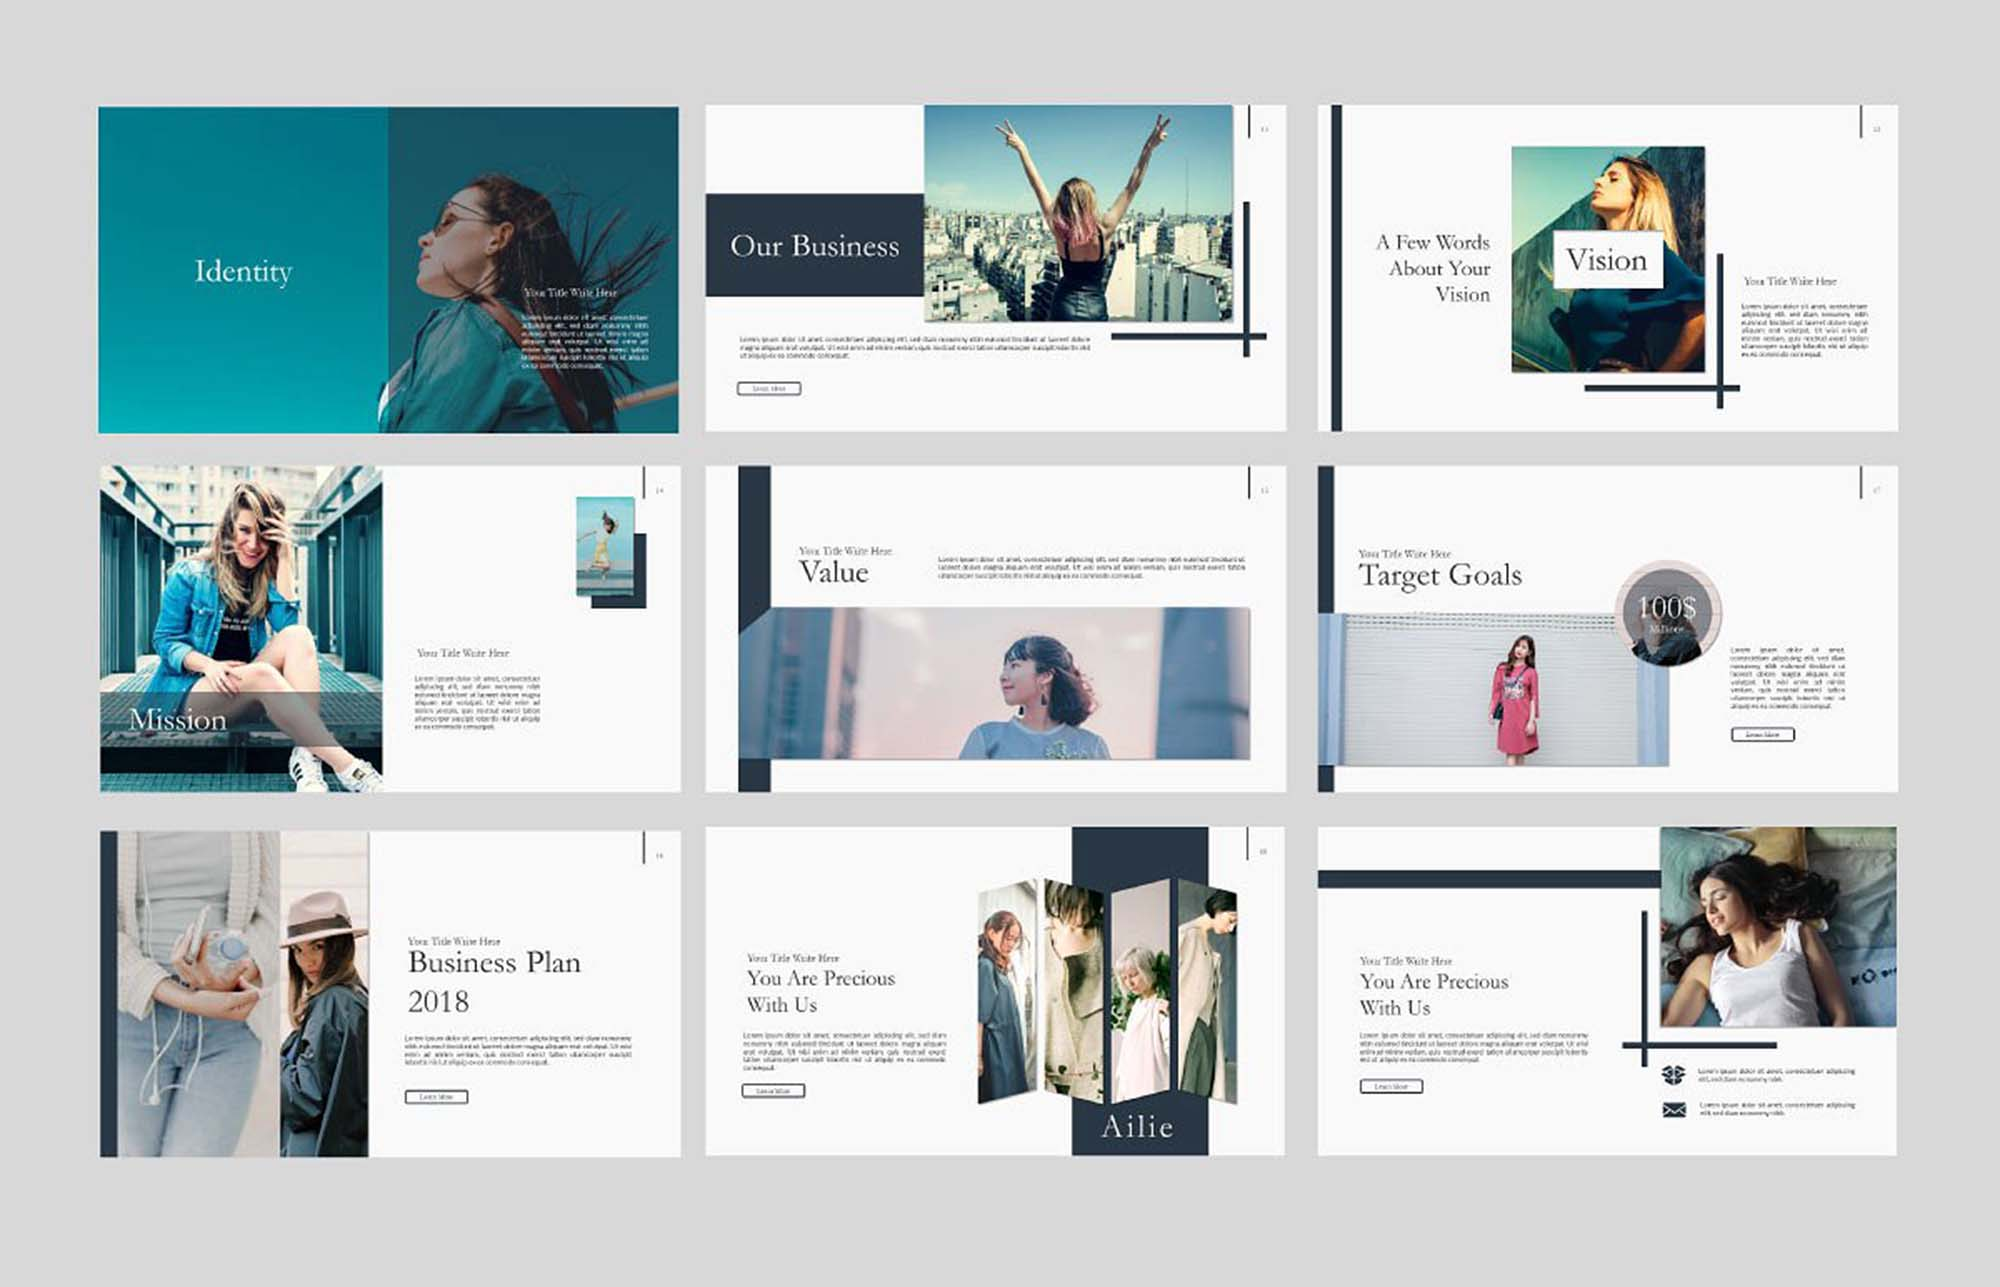 Ailie Free Powerpoint Presentation Template